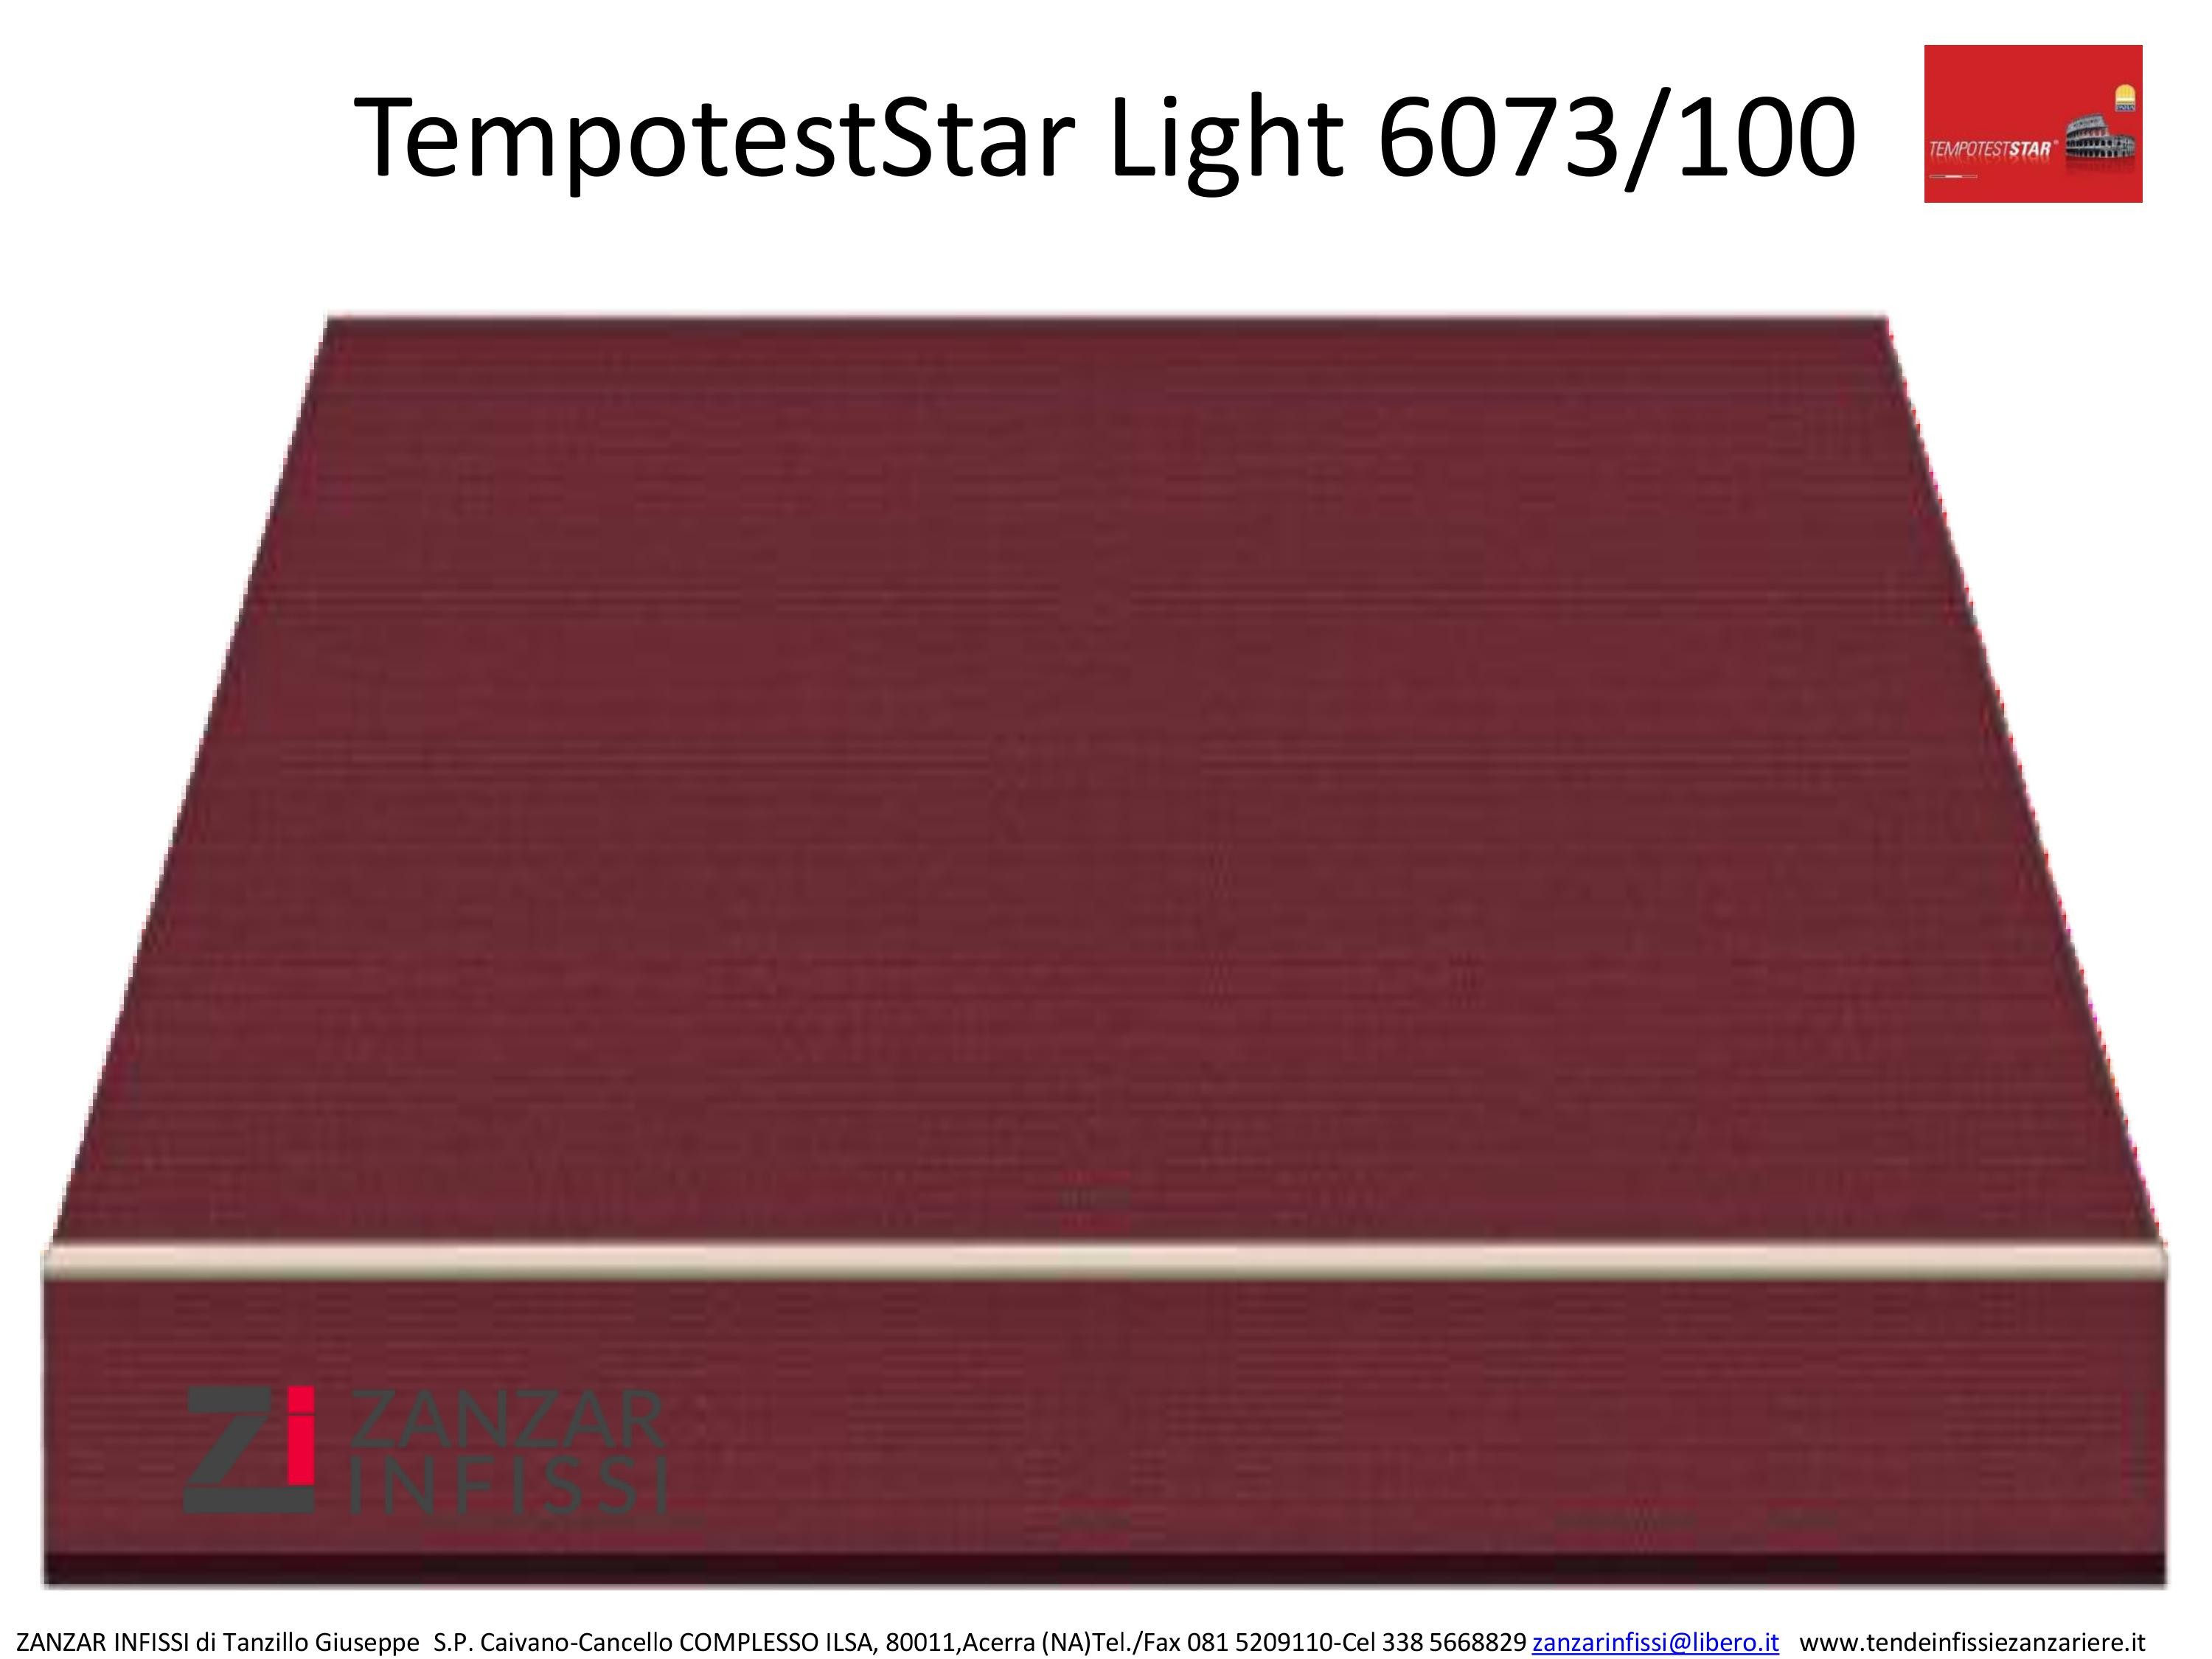 Tempotest star light 6073/100